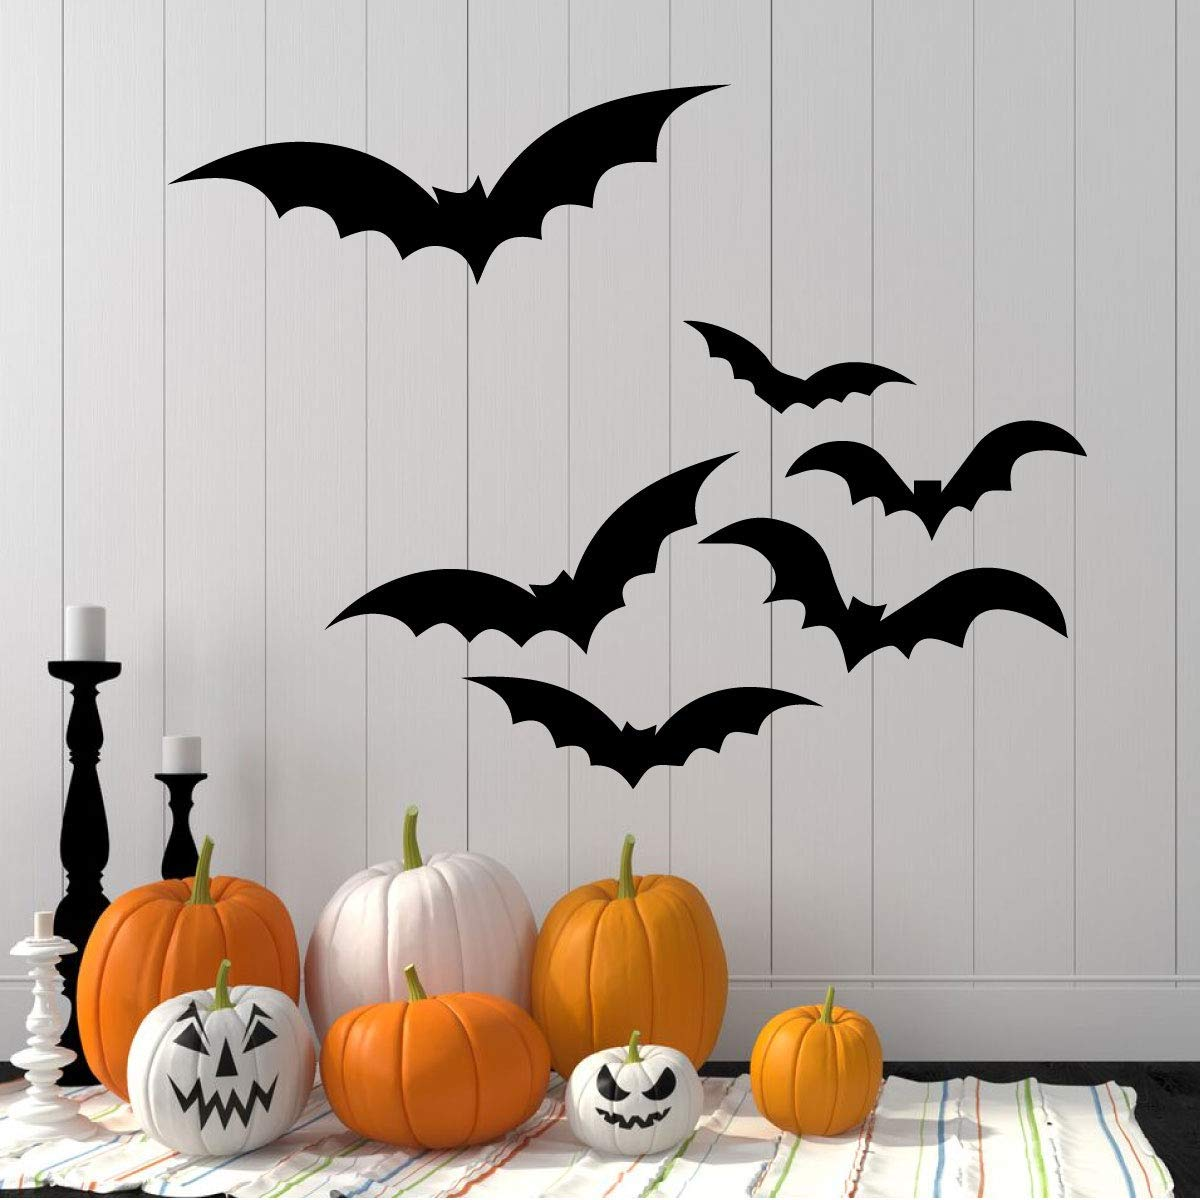 Flying Bat Silhouettes Halloween Decorations Vinyl Decor Wall Decal